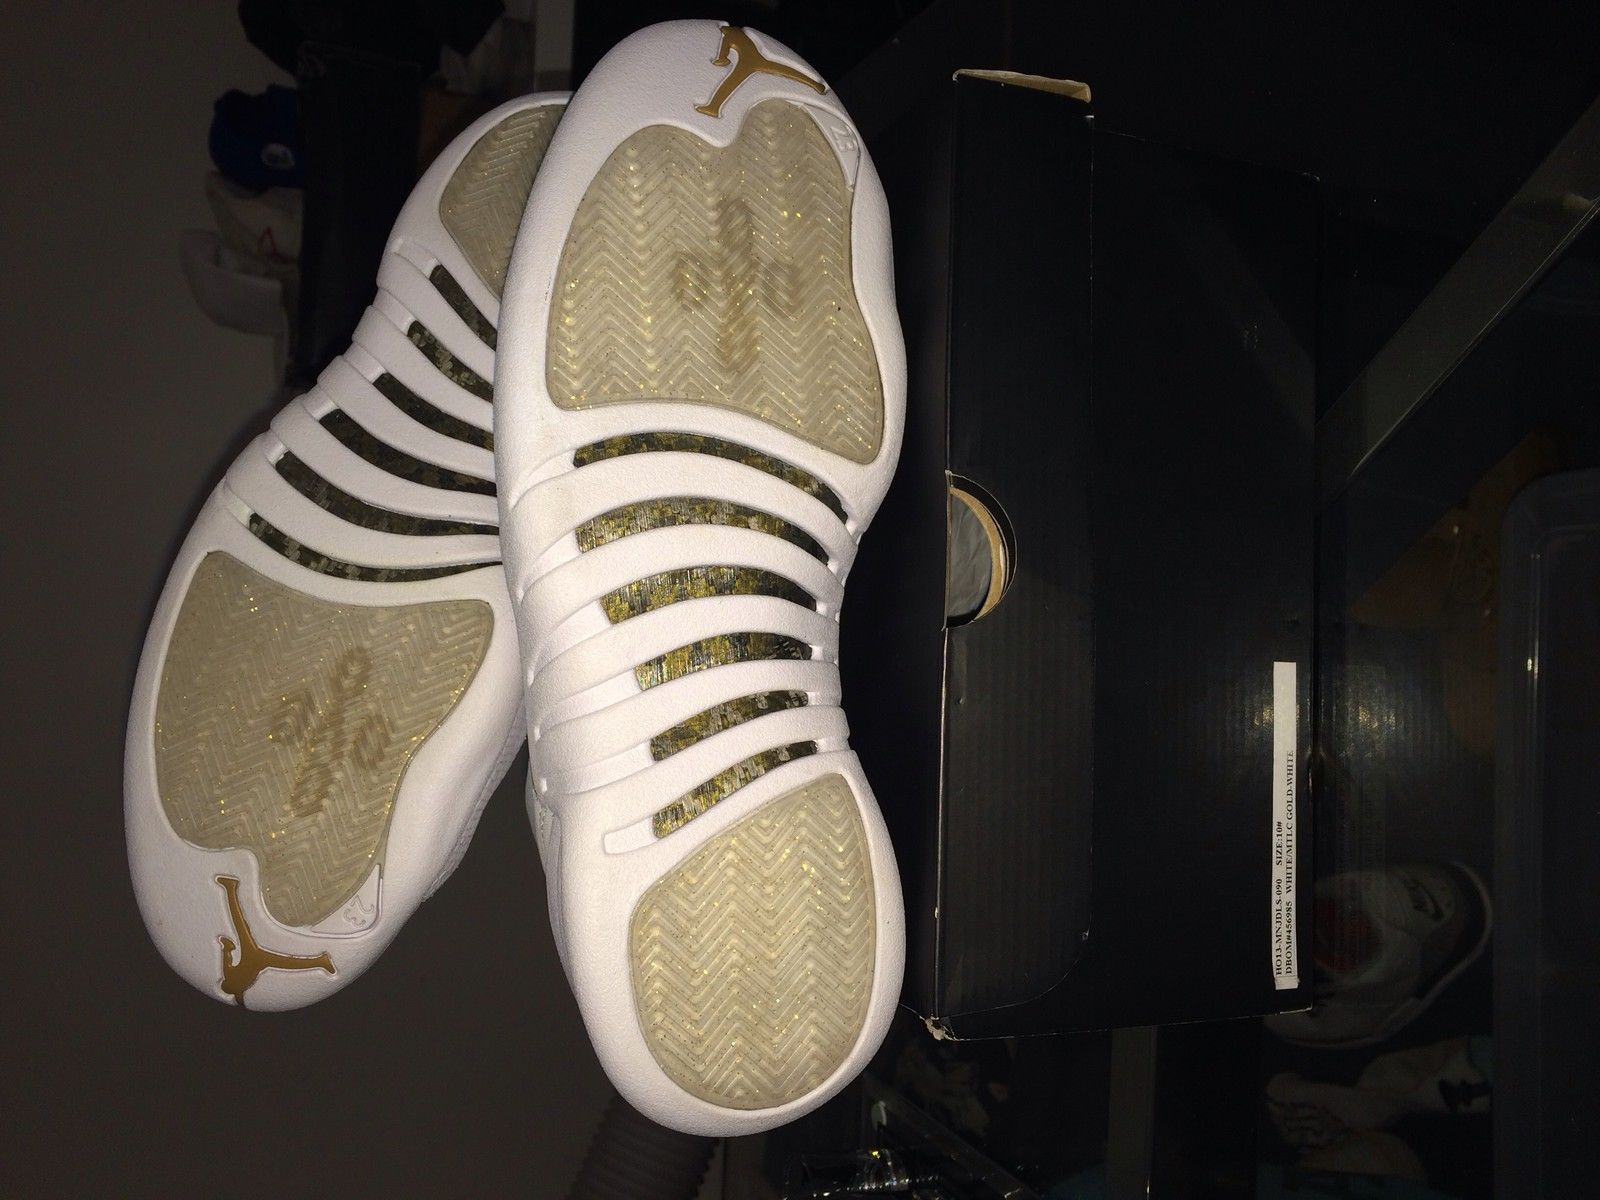 air-jordan-xii-12-ovo-white-seen-on-ebay-3